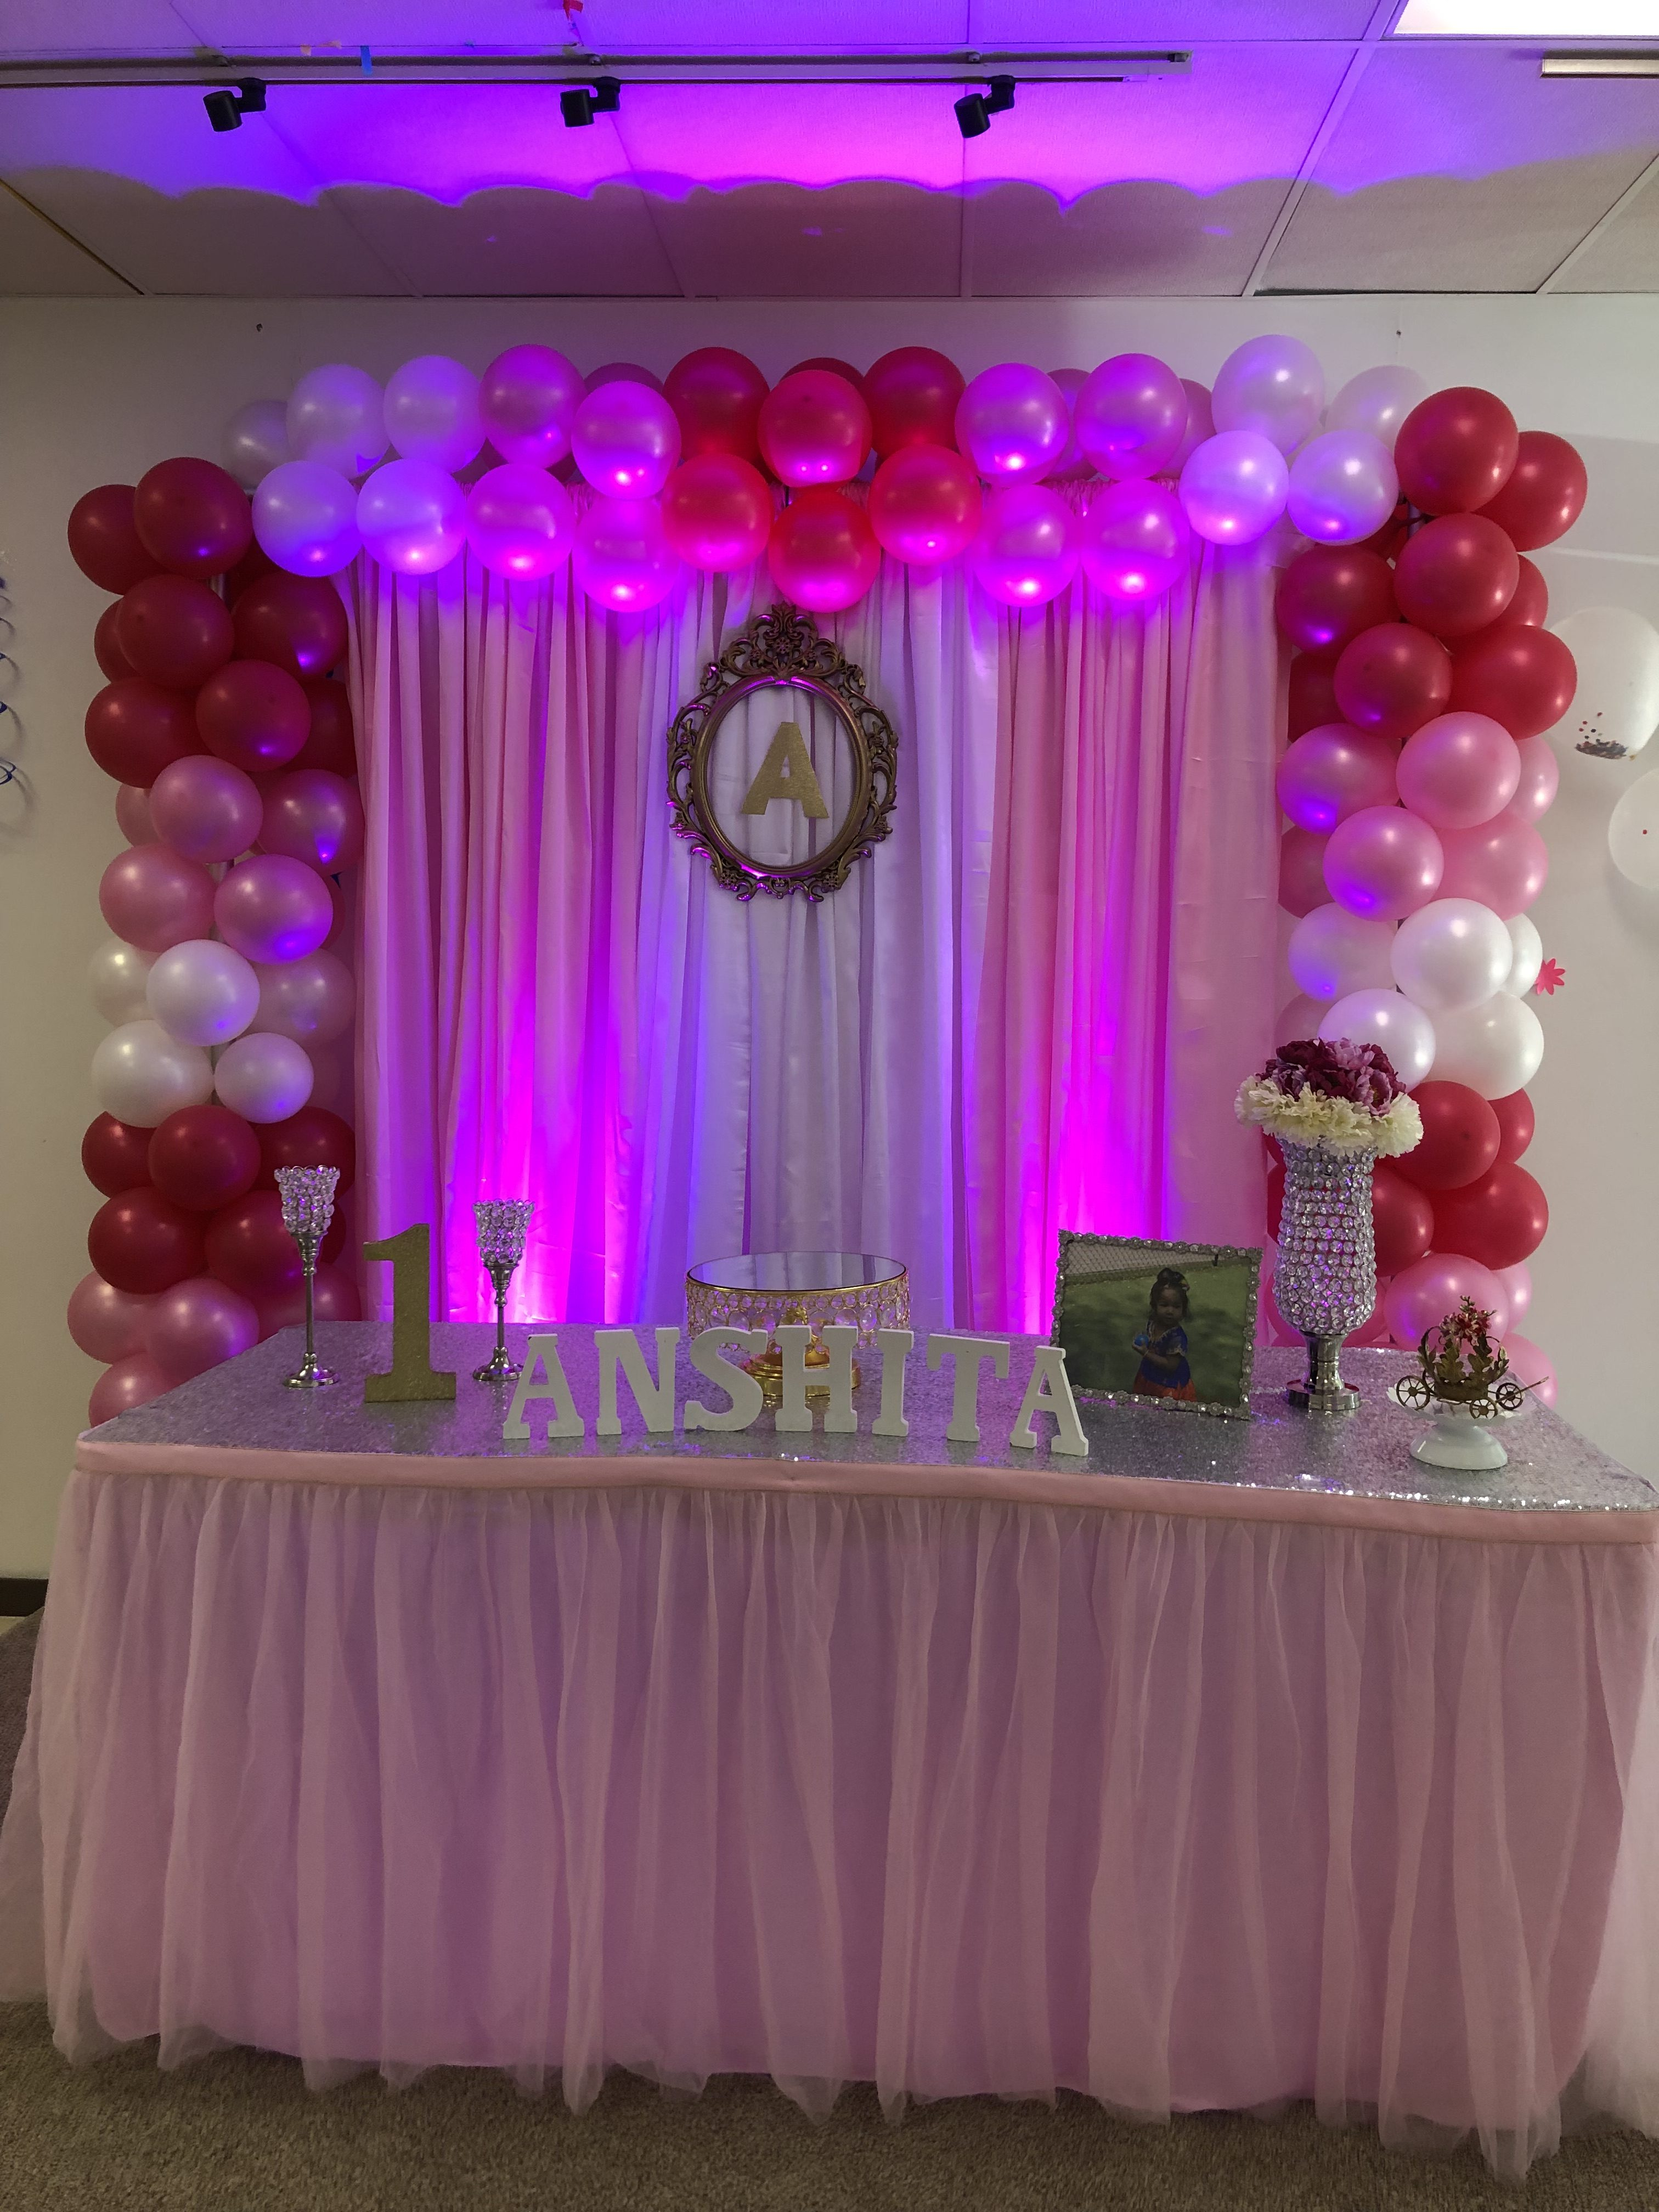 1st Birthday Decorations Girl.Baby Girl First Birthday Decorations At Biryani Pot Duluth